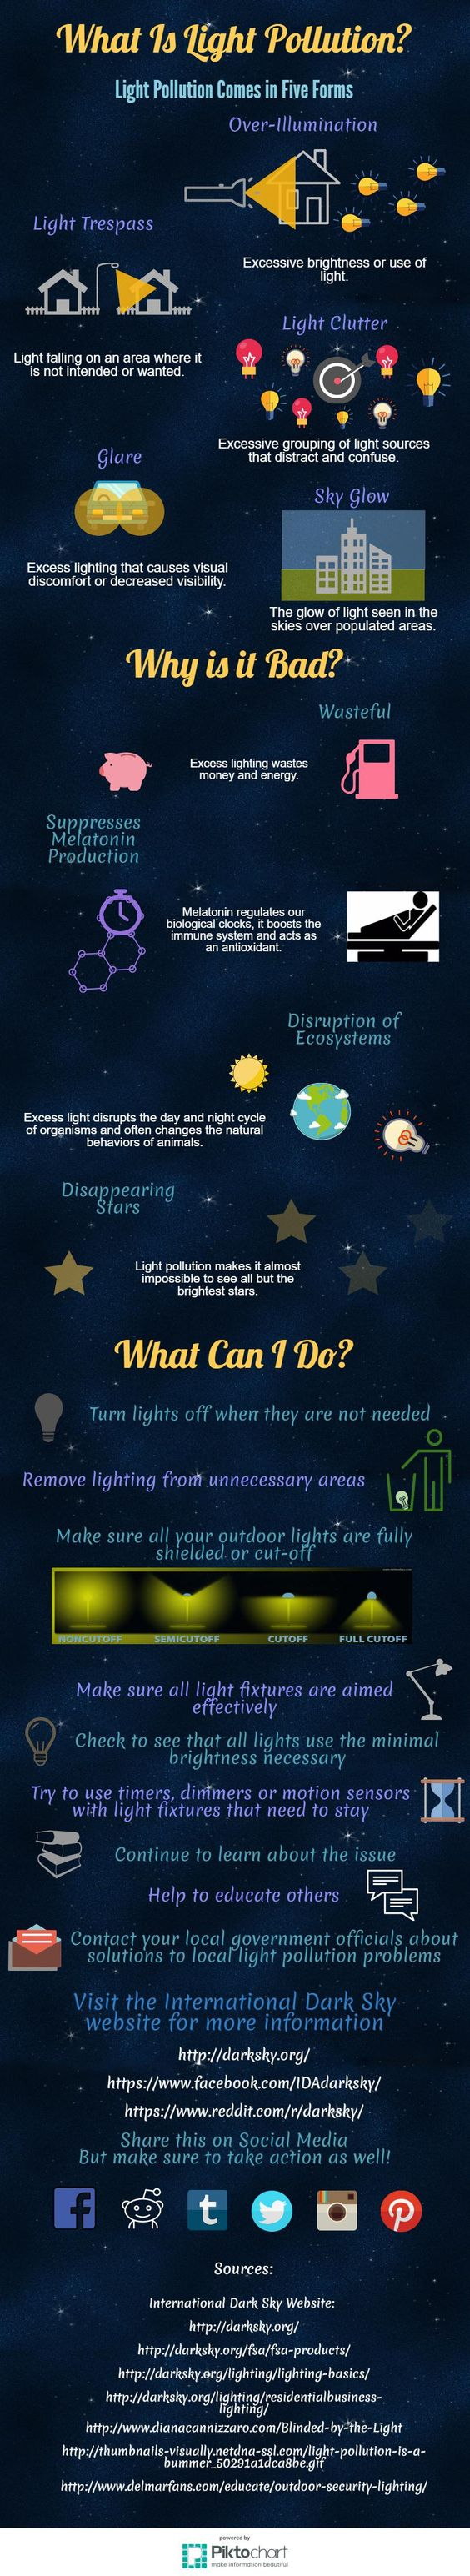 INFOGRAFIA DARK SKY ASSOCIATION.jpg